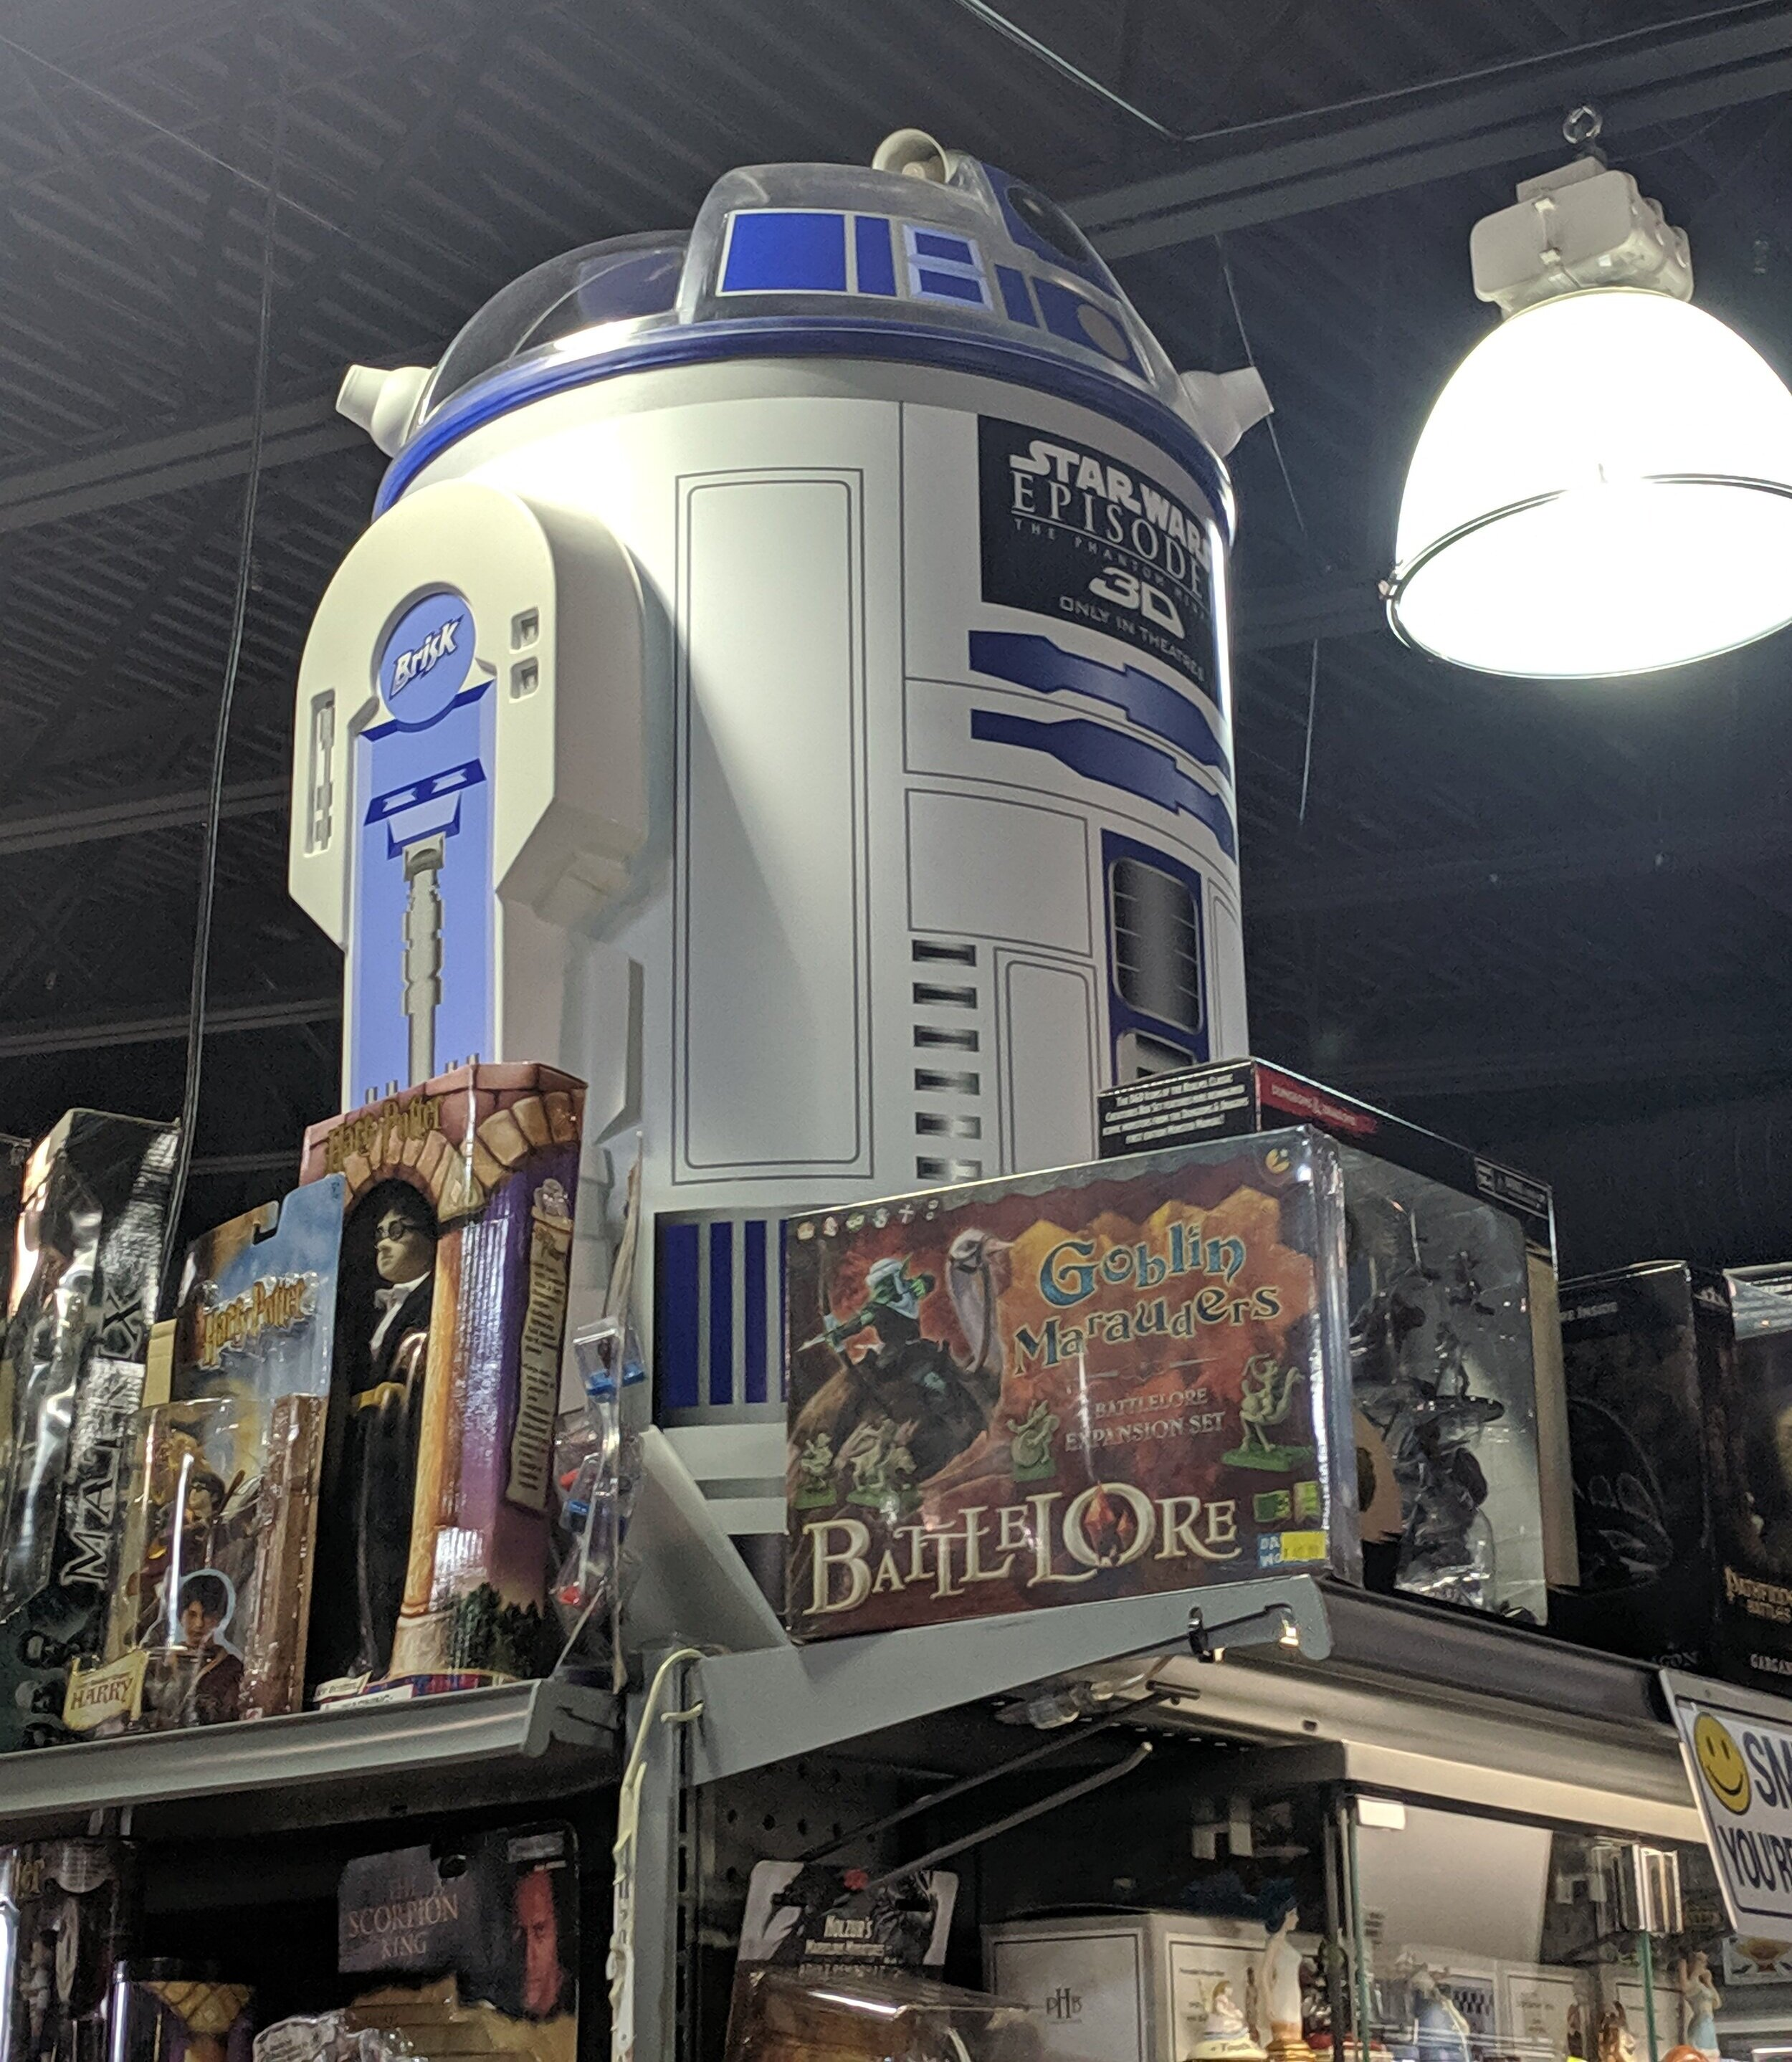 Watch your back though, R2 seems like the kind of droid that would drink all your craft beer while you're not looking